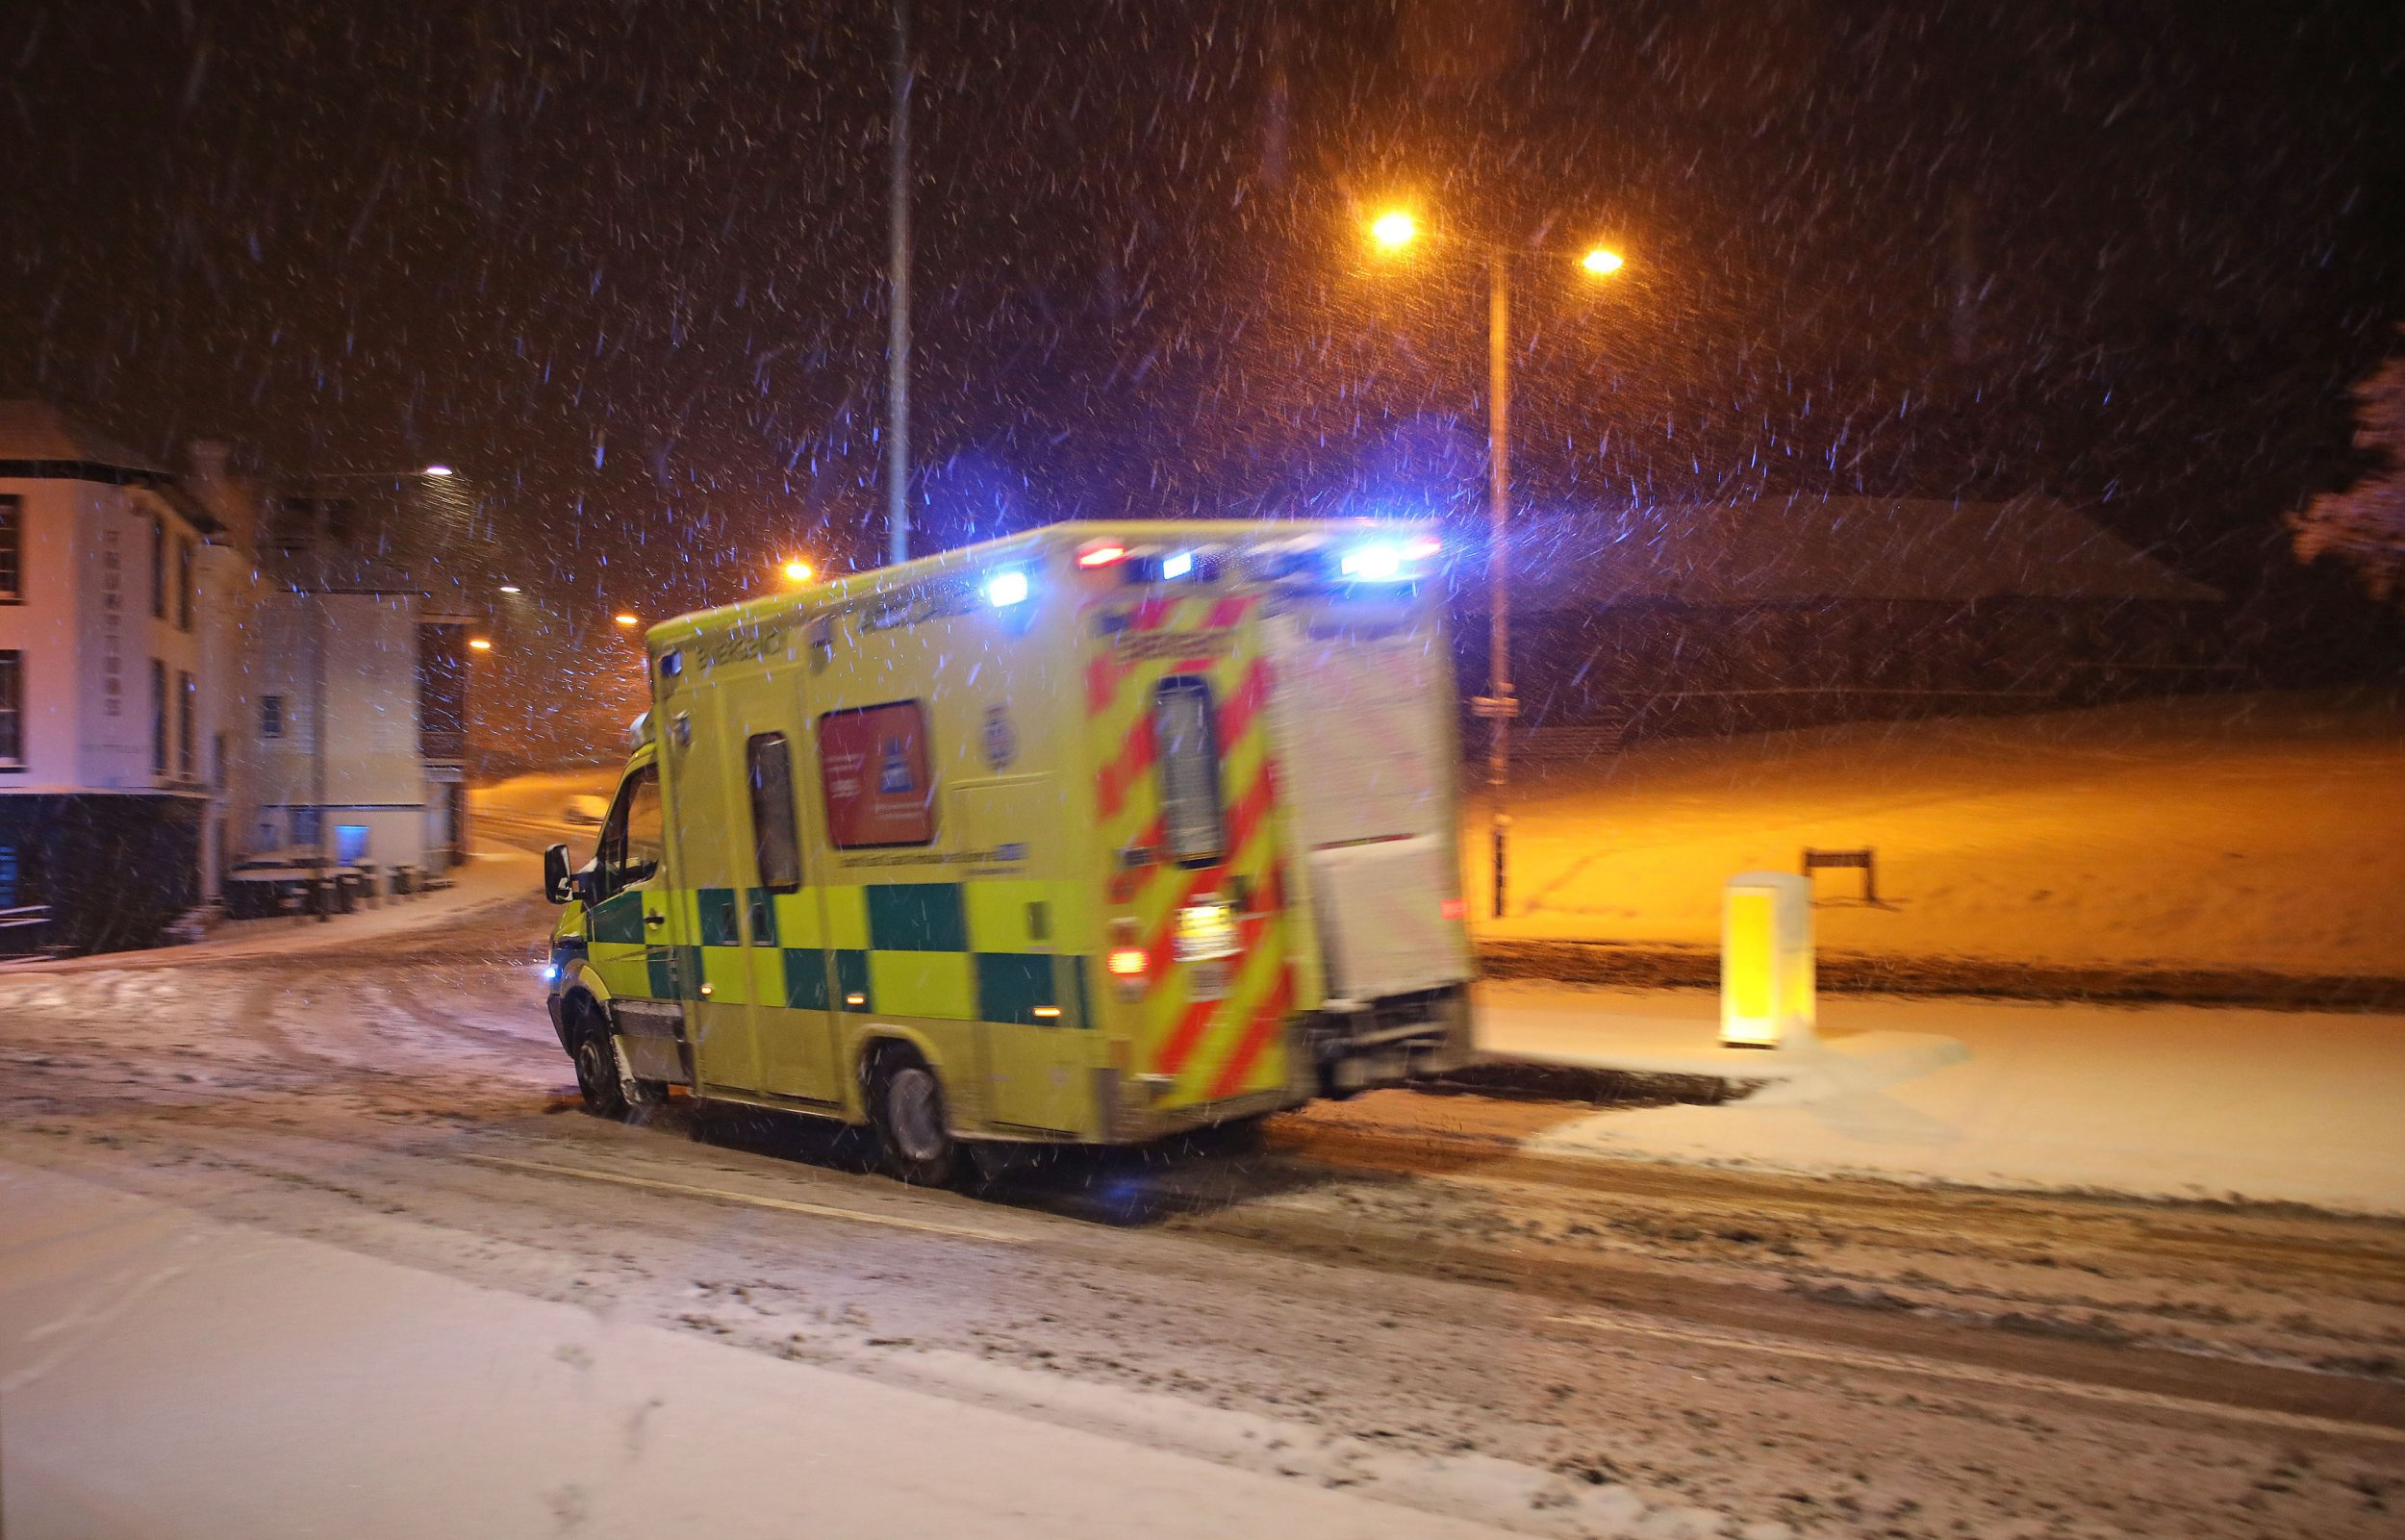 An ambulance drives through the snow in Tunbridge Wells, Kent, following heavy overnight snowfall which has caused disruption across Britain. PRESS ASSOCIATION Photo. Picture date: Tuesday February 27, 2018. Roads across the UK have already seen a blanketing of snow, with police forces reporting treacherous driving conditions and blocked routes. See PA story WEATHER Snow. Photo credit should read: Philip Toscano/PA Wire